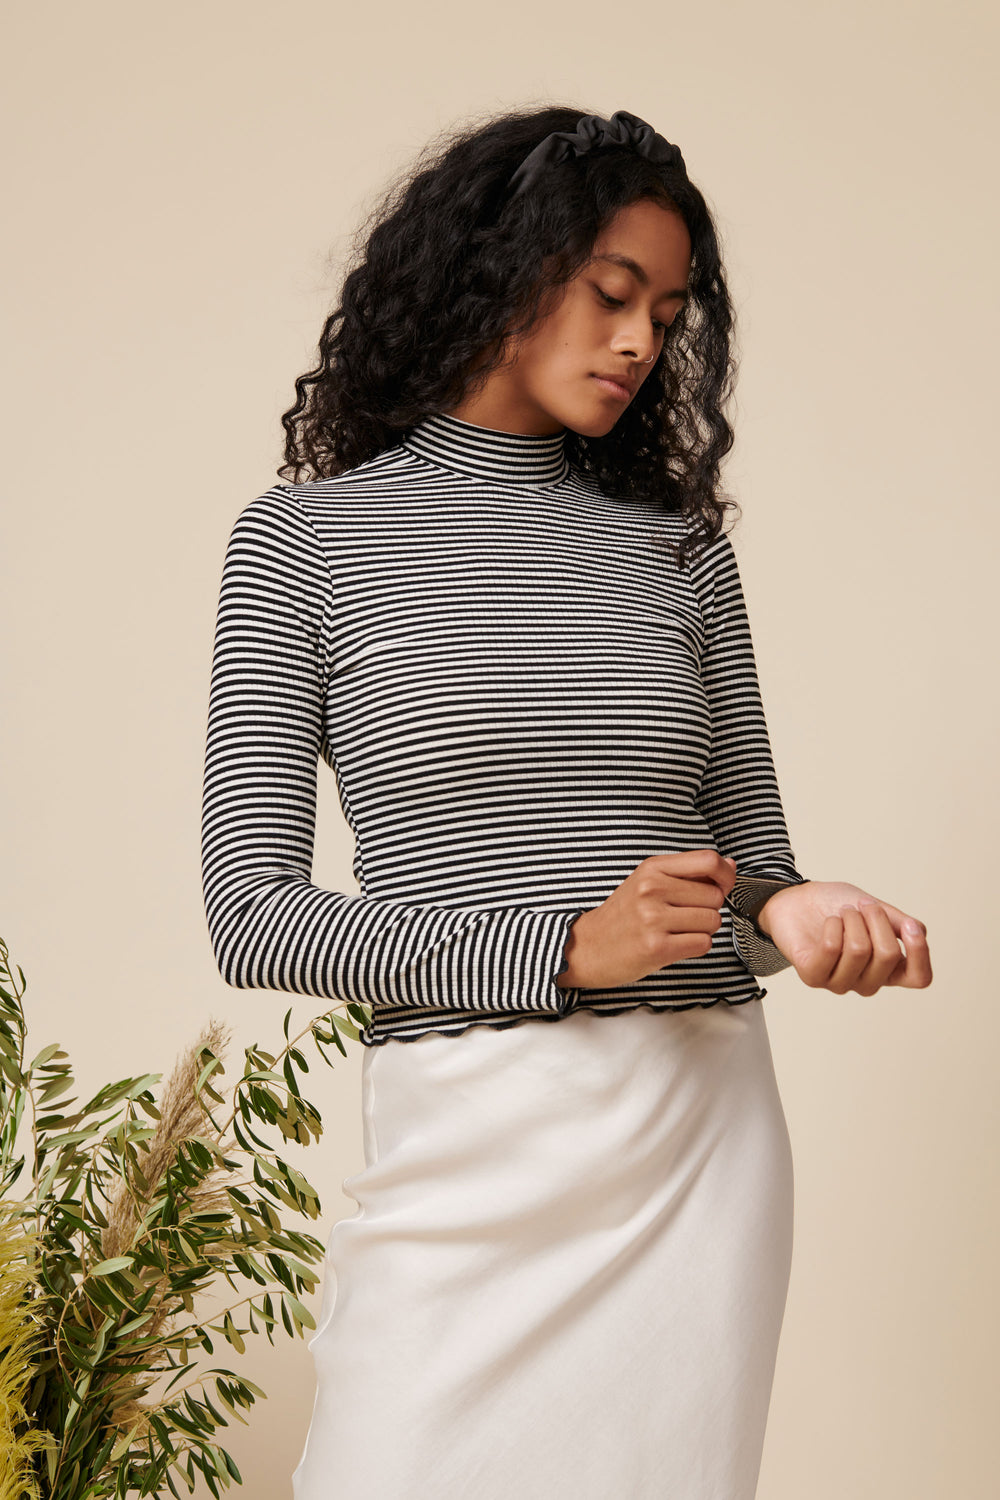 Gigi Top in White and Black Stripe - Whimsy & Row